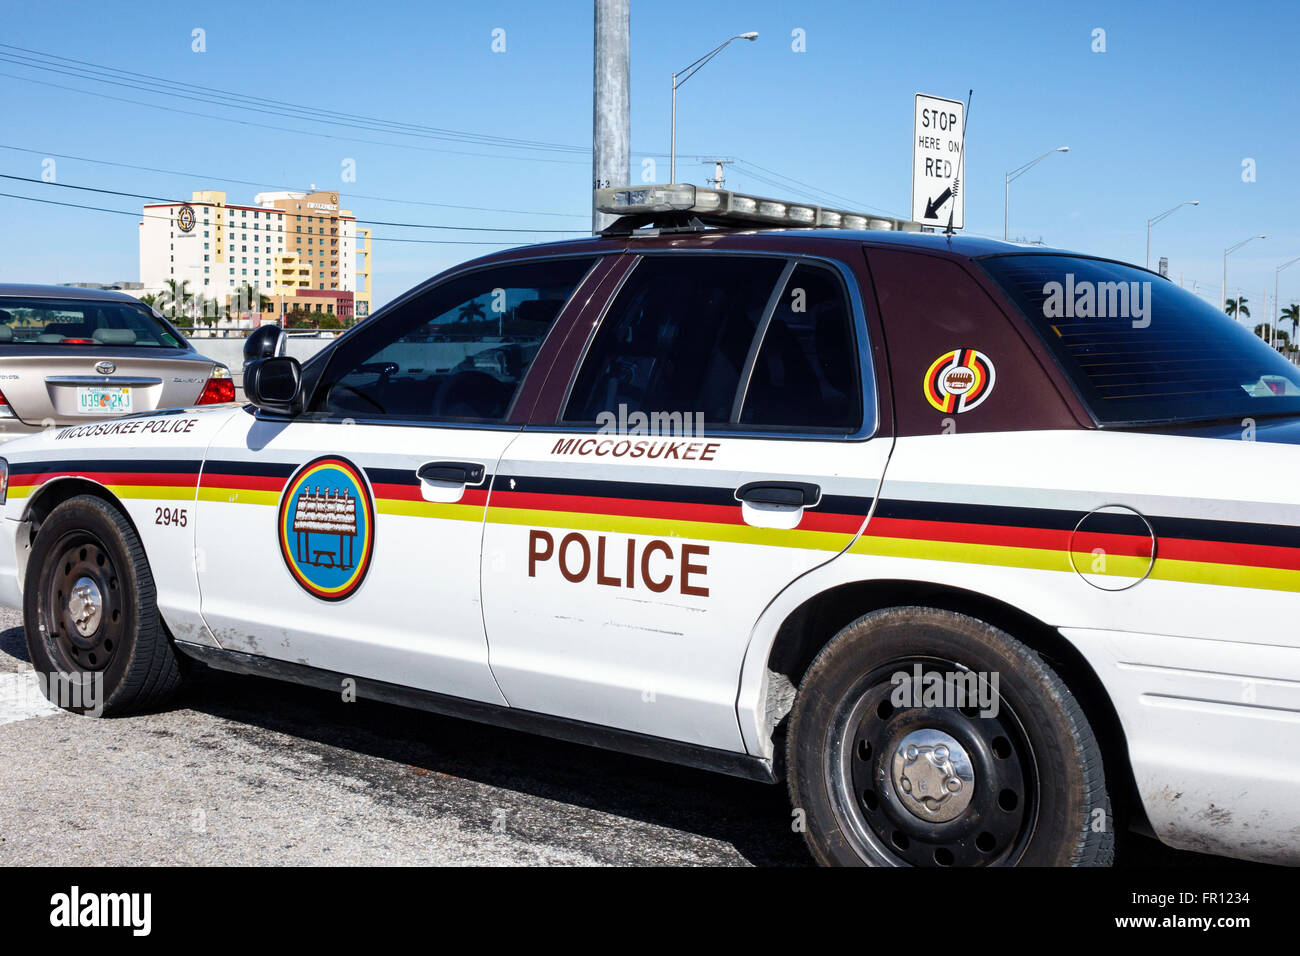 Florida FL Everglades Tamiami Trail Miccosukee Tribe Reservation Native American Indian police car vehicle Stock Photo